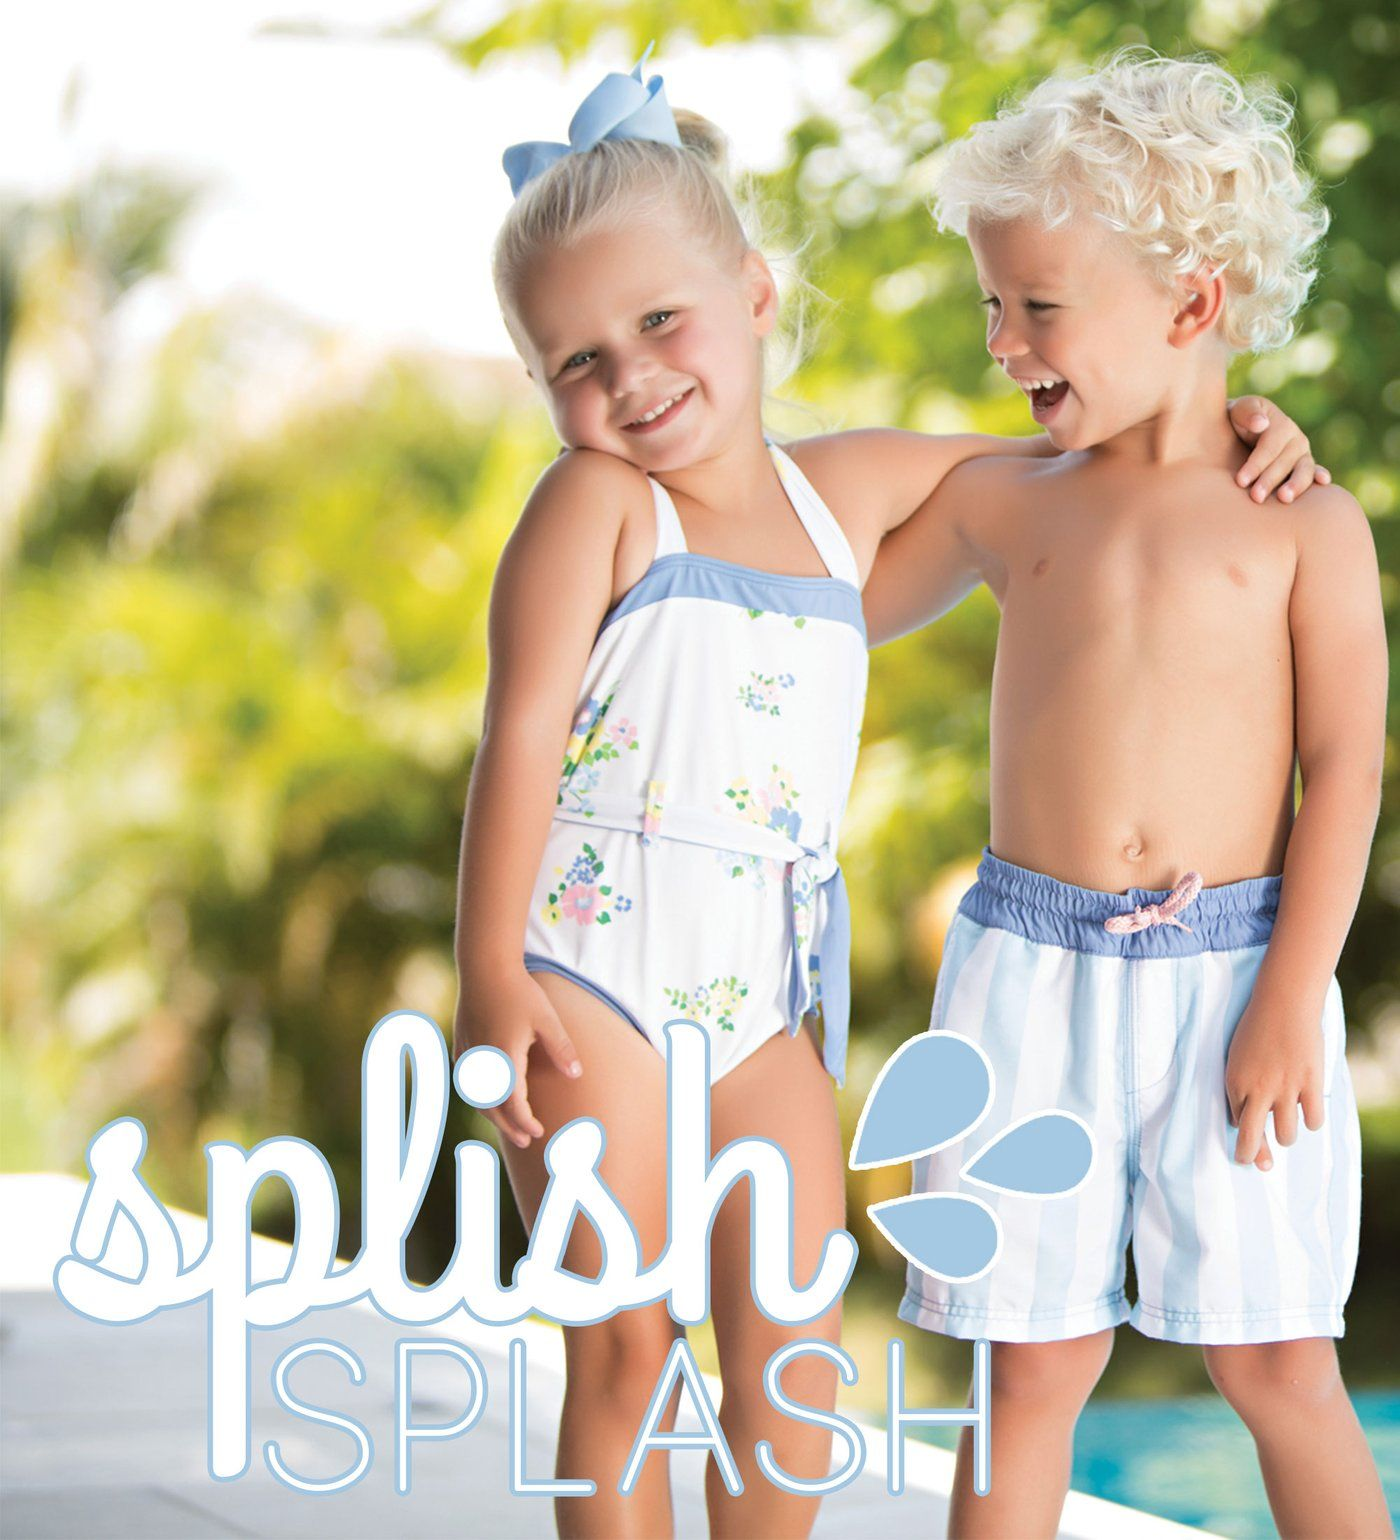 94d7736fffd3c Clothing and Accessories for Babies Born with a Refined Sense of Style